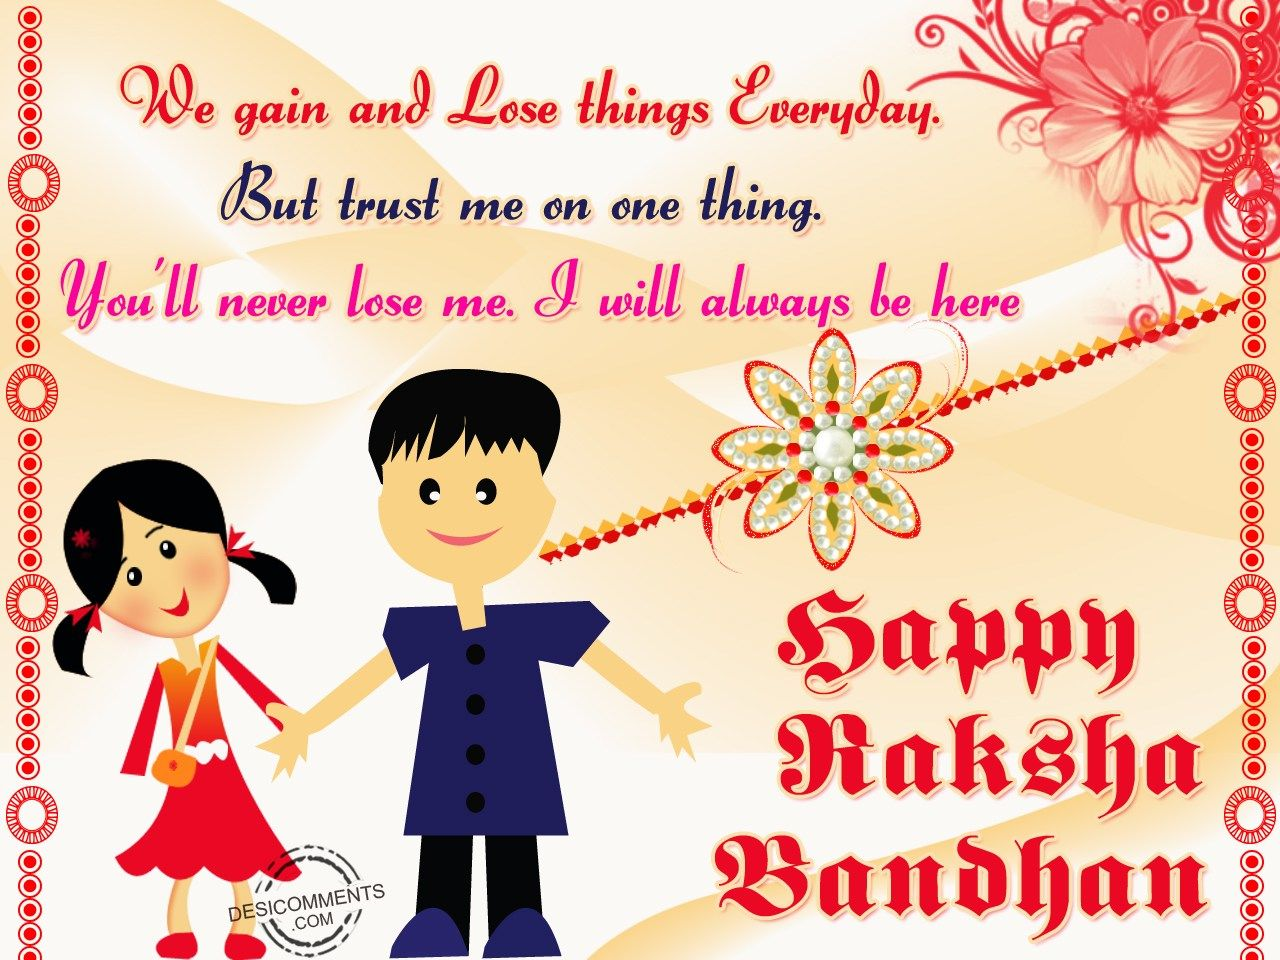 Happy raksha bandhan raksha bandhan pinterest raksha bandhan rakhi quotes happy raksha bandhan kristyandbryce Image collections